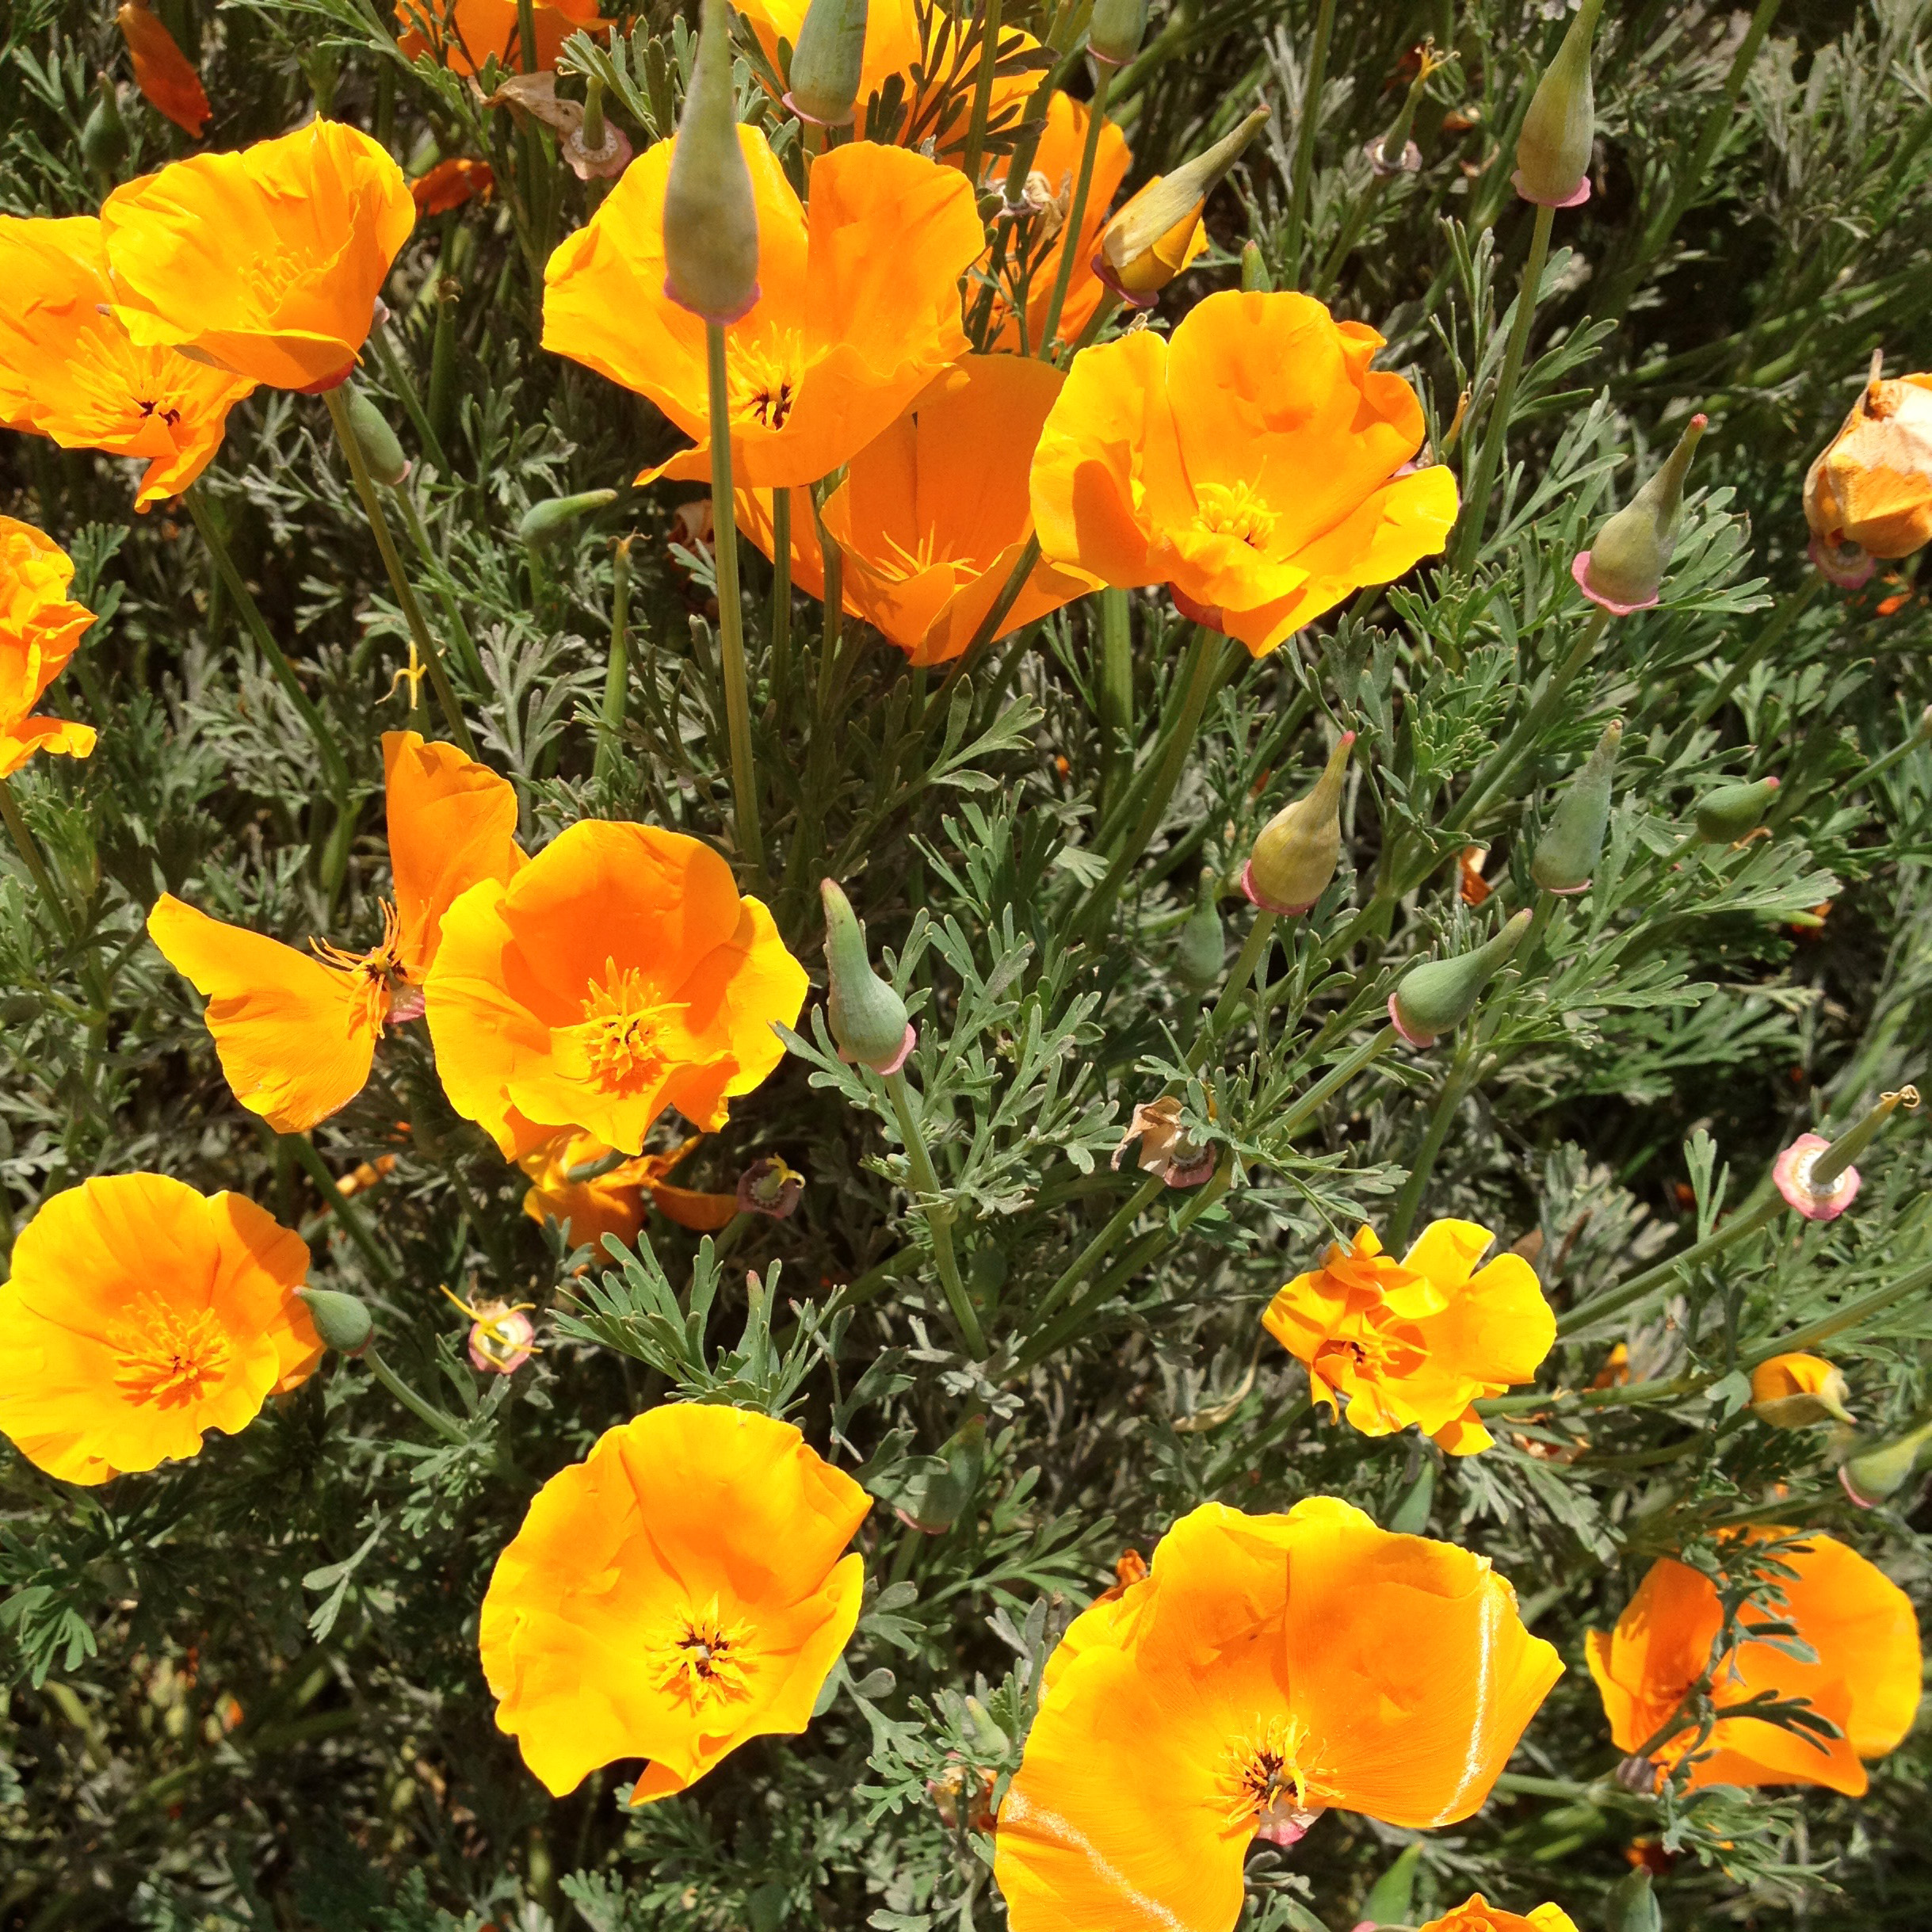 THE FREE-SPIRITED CALIFORNIA POPPY RETURNS EVERY YEAR TO CHEER ME UP